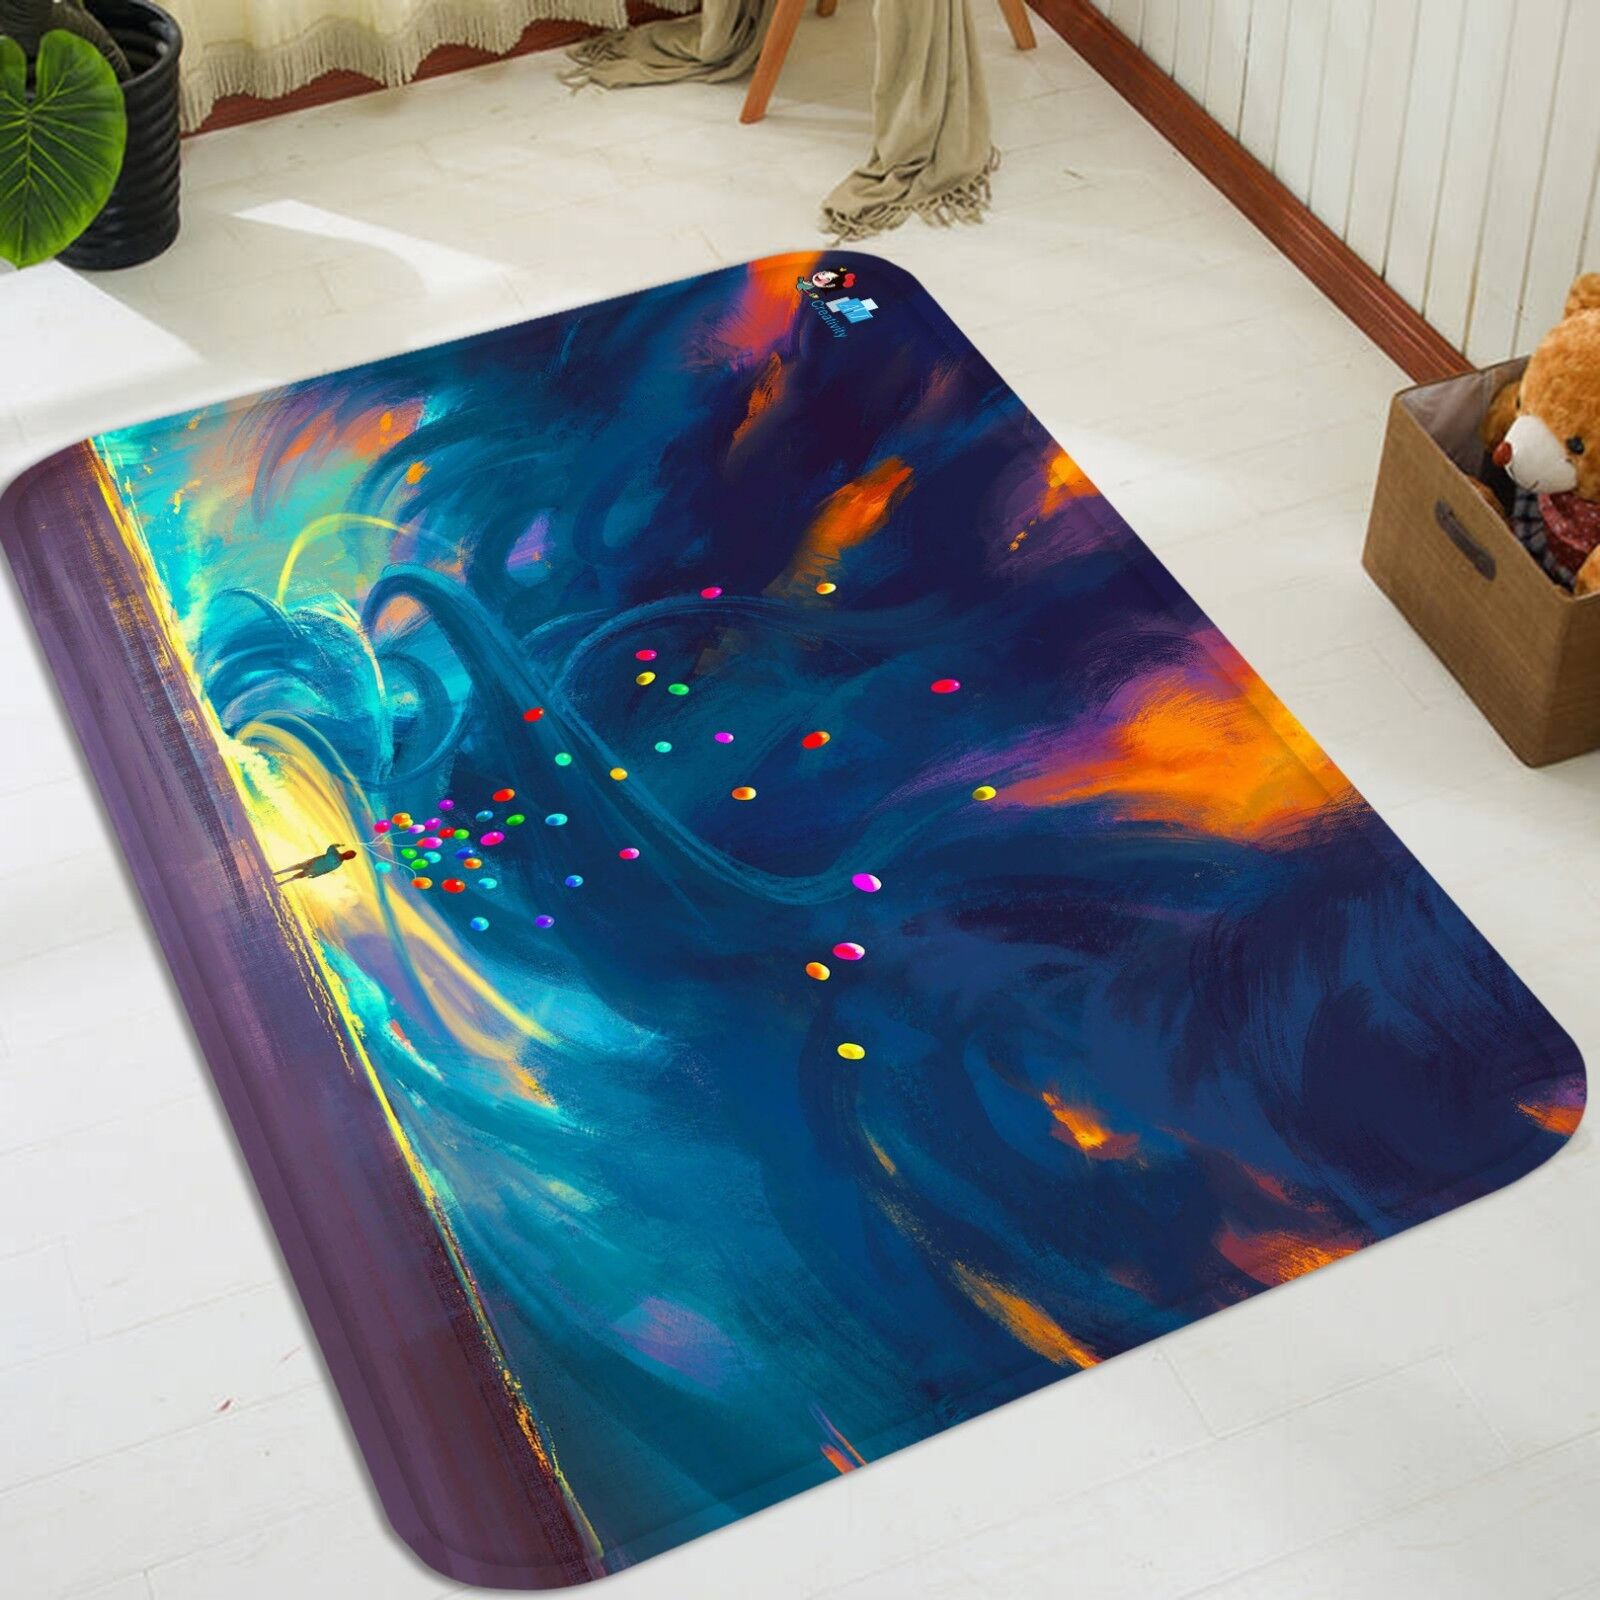 3D Paintig 020 Non Slip Rug Mat Room Mat Mat Mat Quality Elegant Photo Carpet UK Summer 1064e1